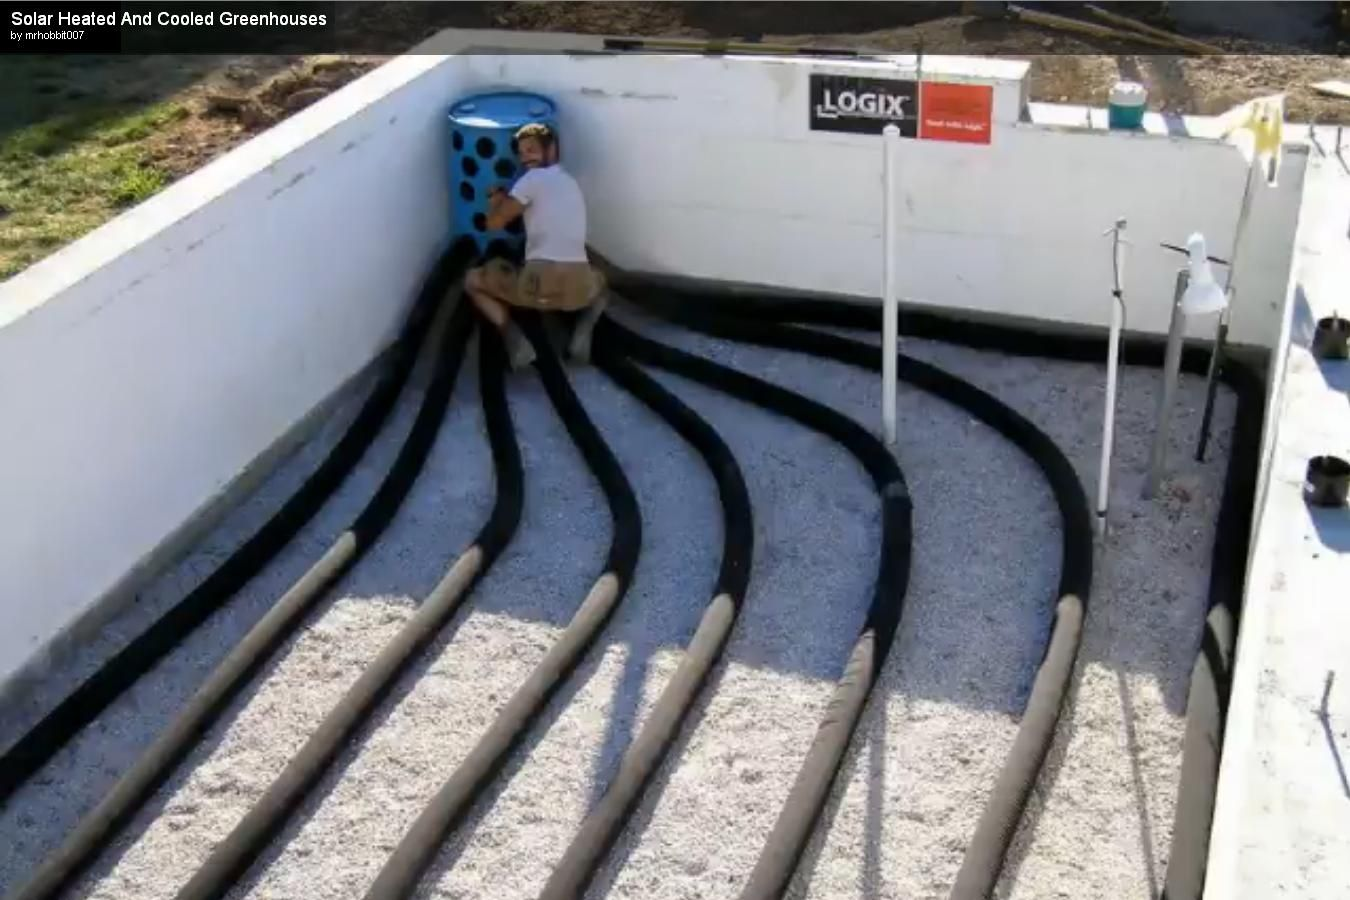 Subterranean Heating Cooling System Greenhouses Garden